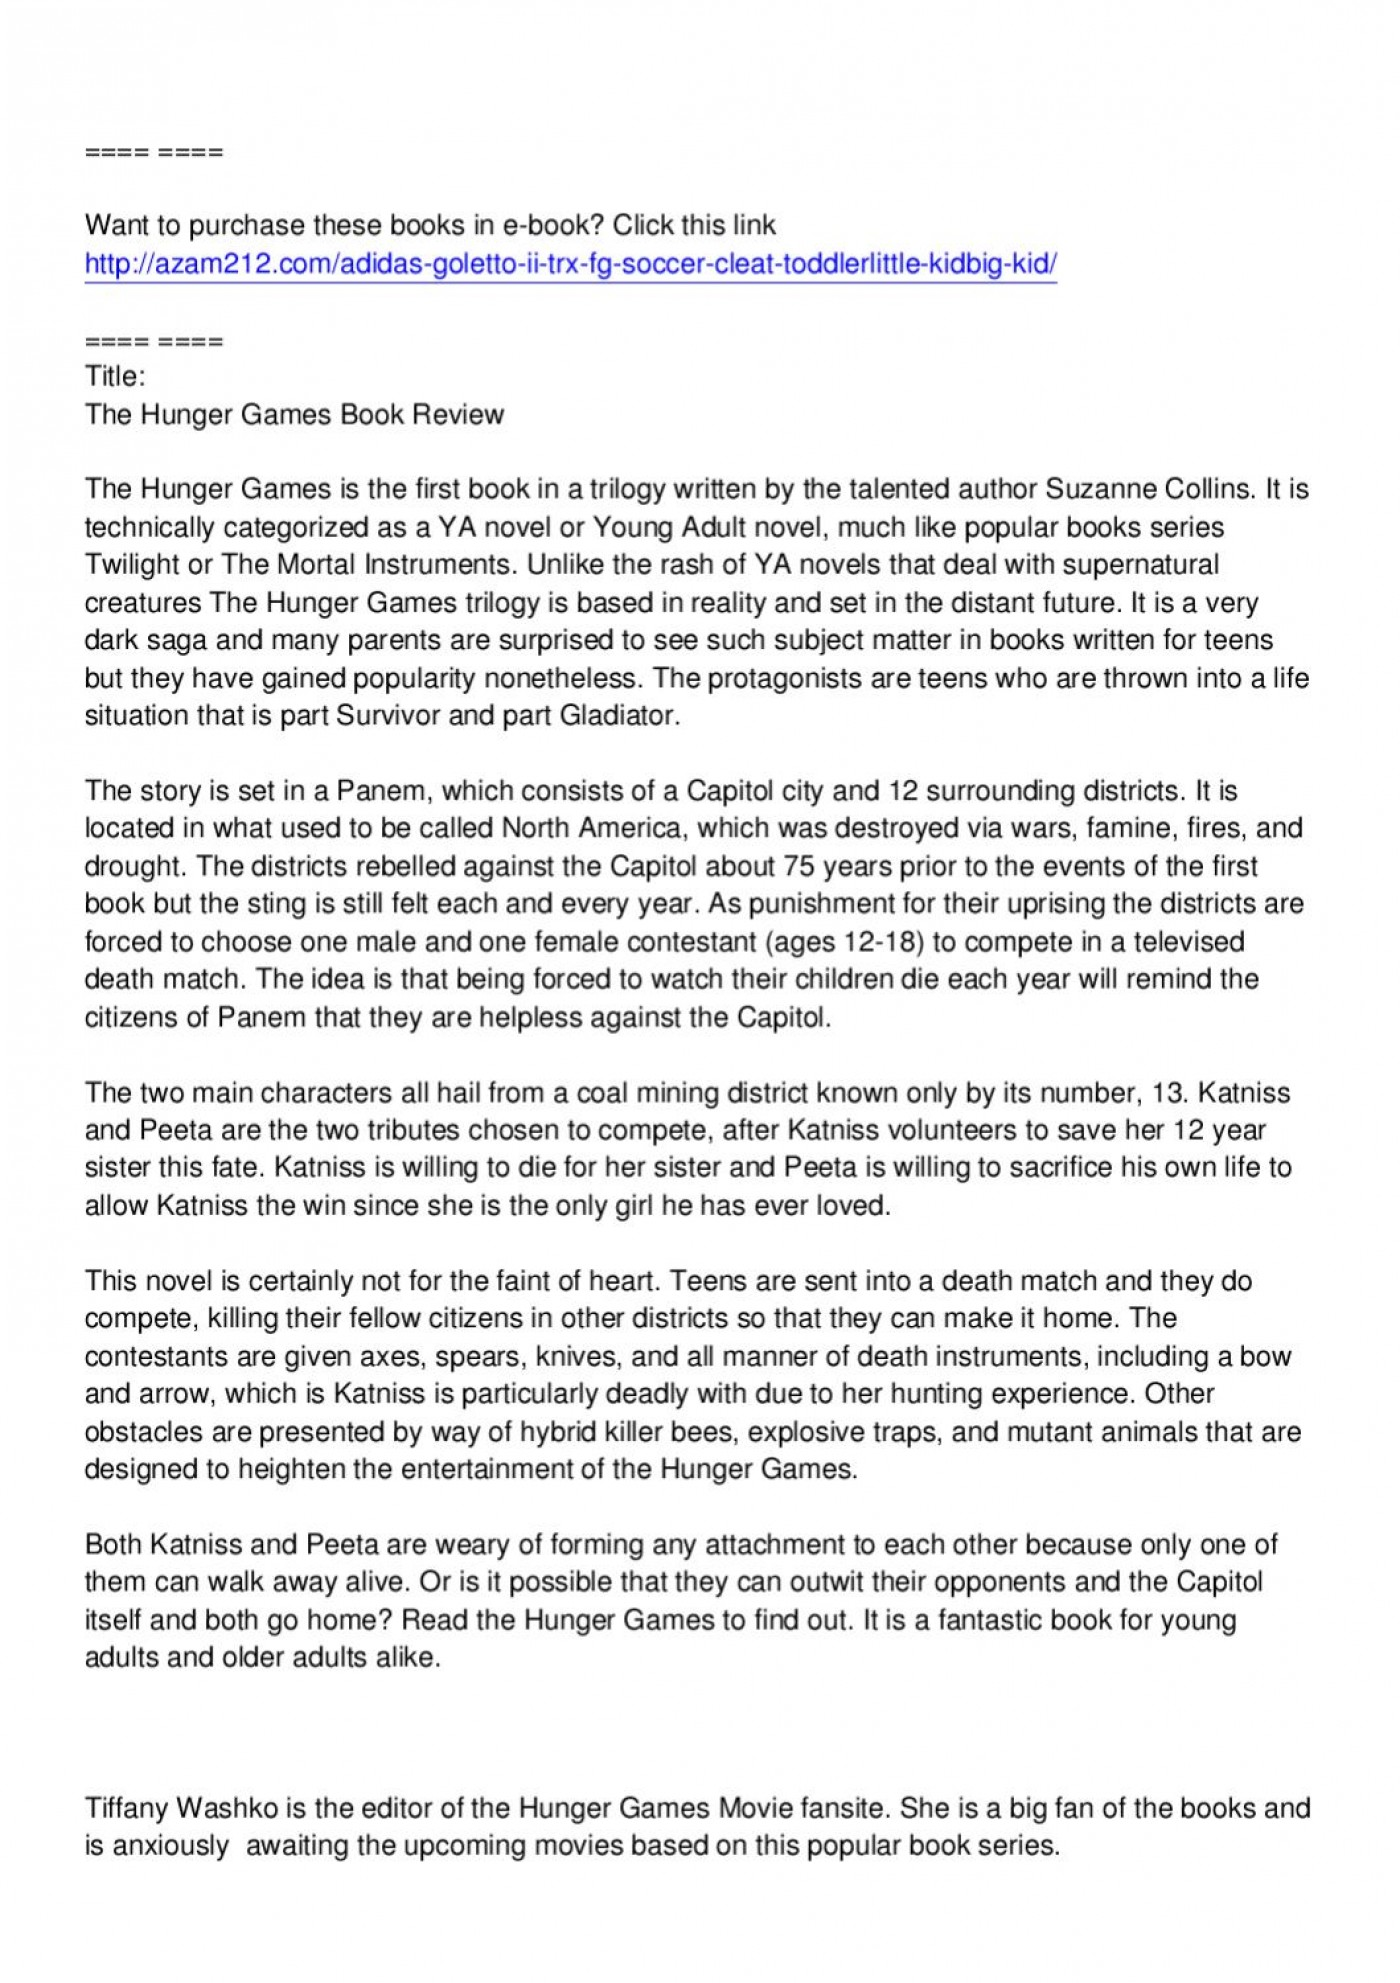 002 Page 1 Essay Example The Hunger Games Book Imposing Review 1400